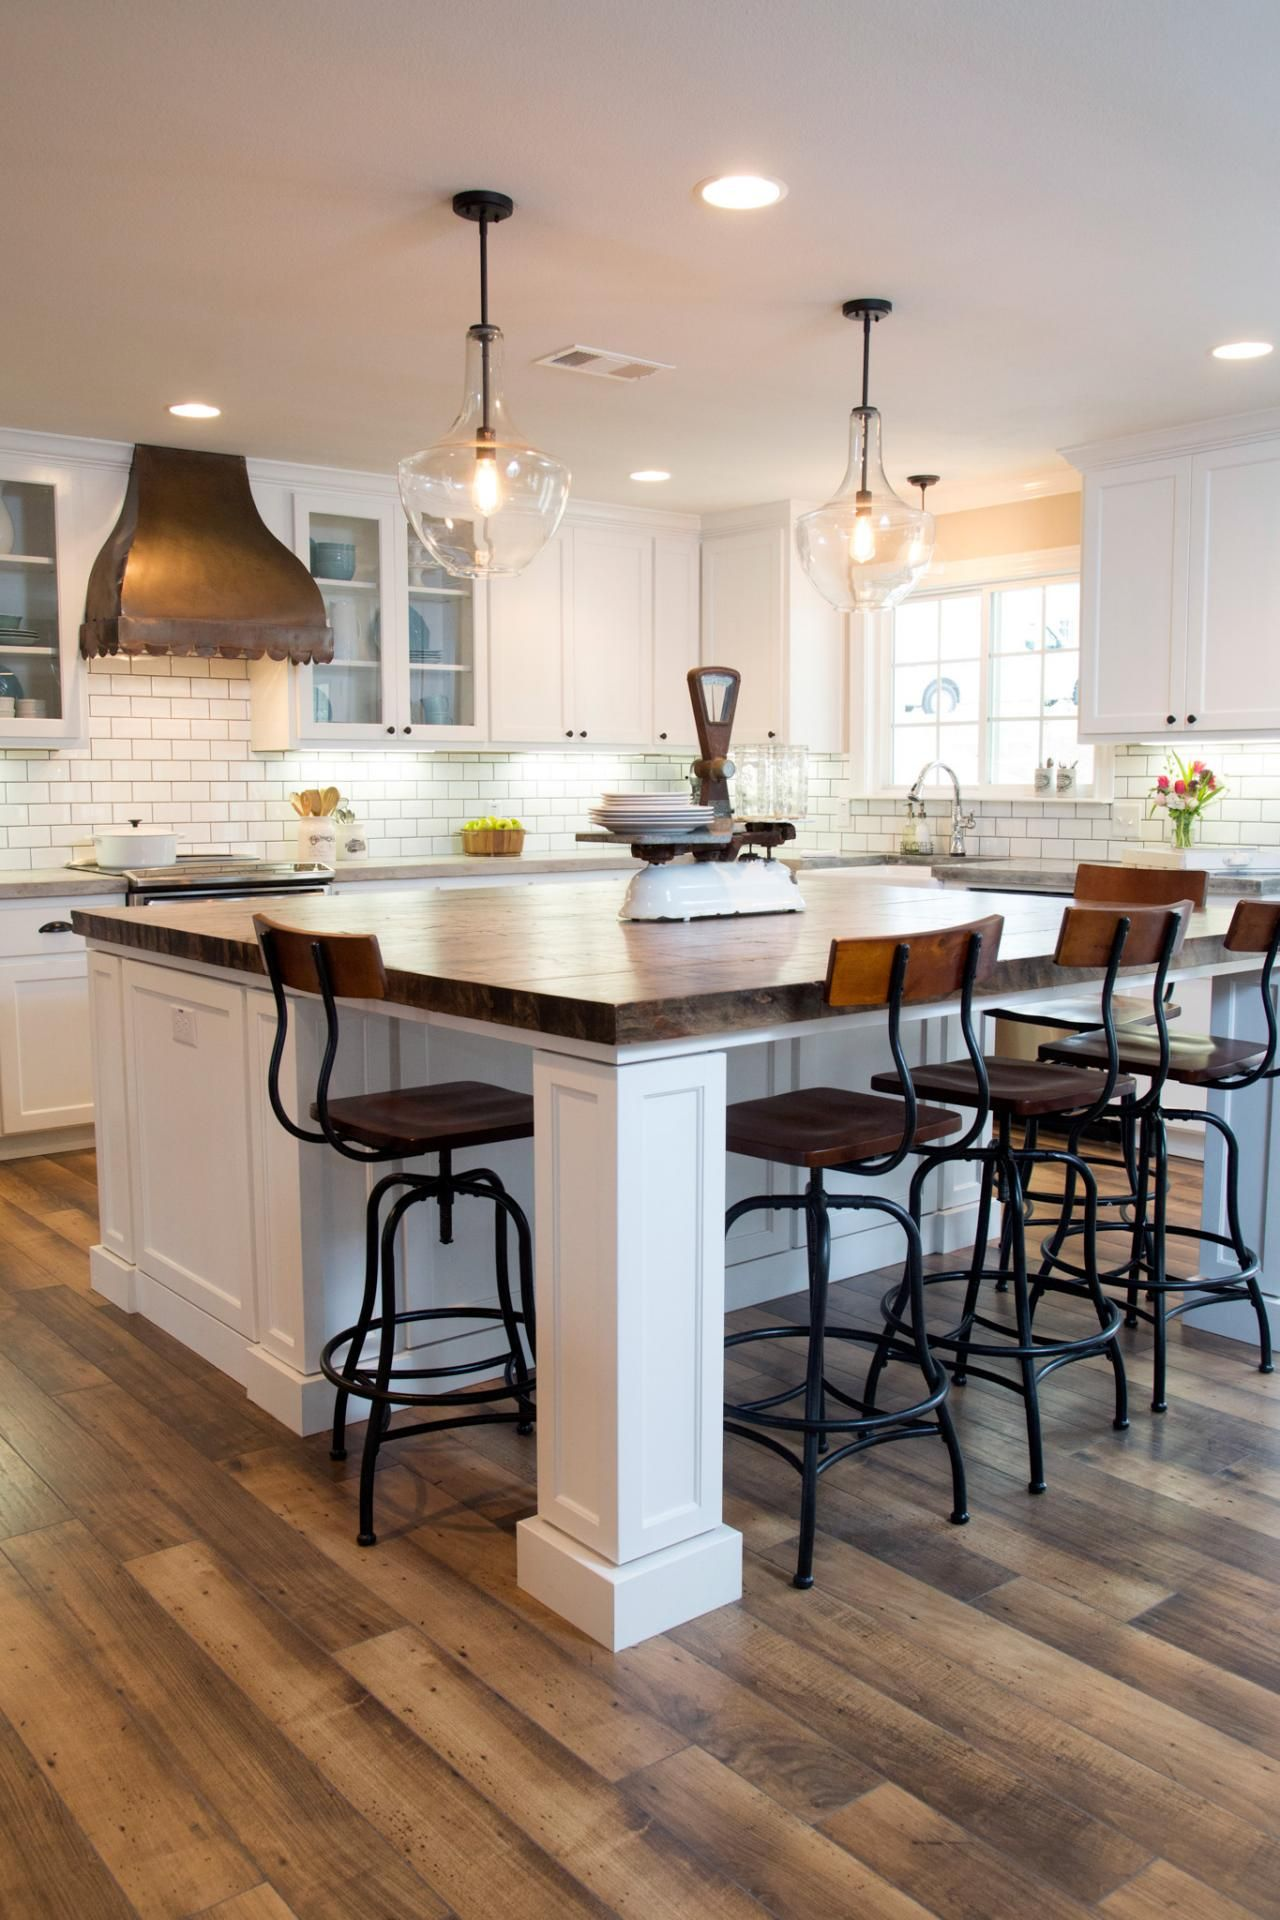 Fixer upper double kitchen island - Life Is Just A Tire Swing A Woodway Texas Fixer Upper Pendant Lights Kitchen Islandkitchen